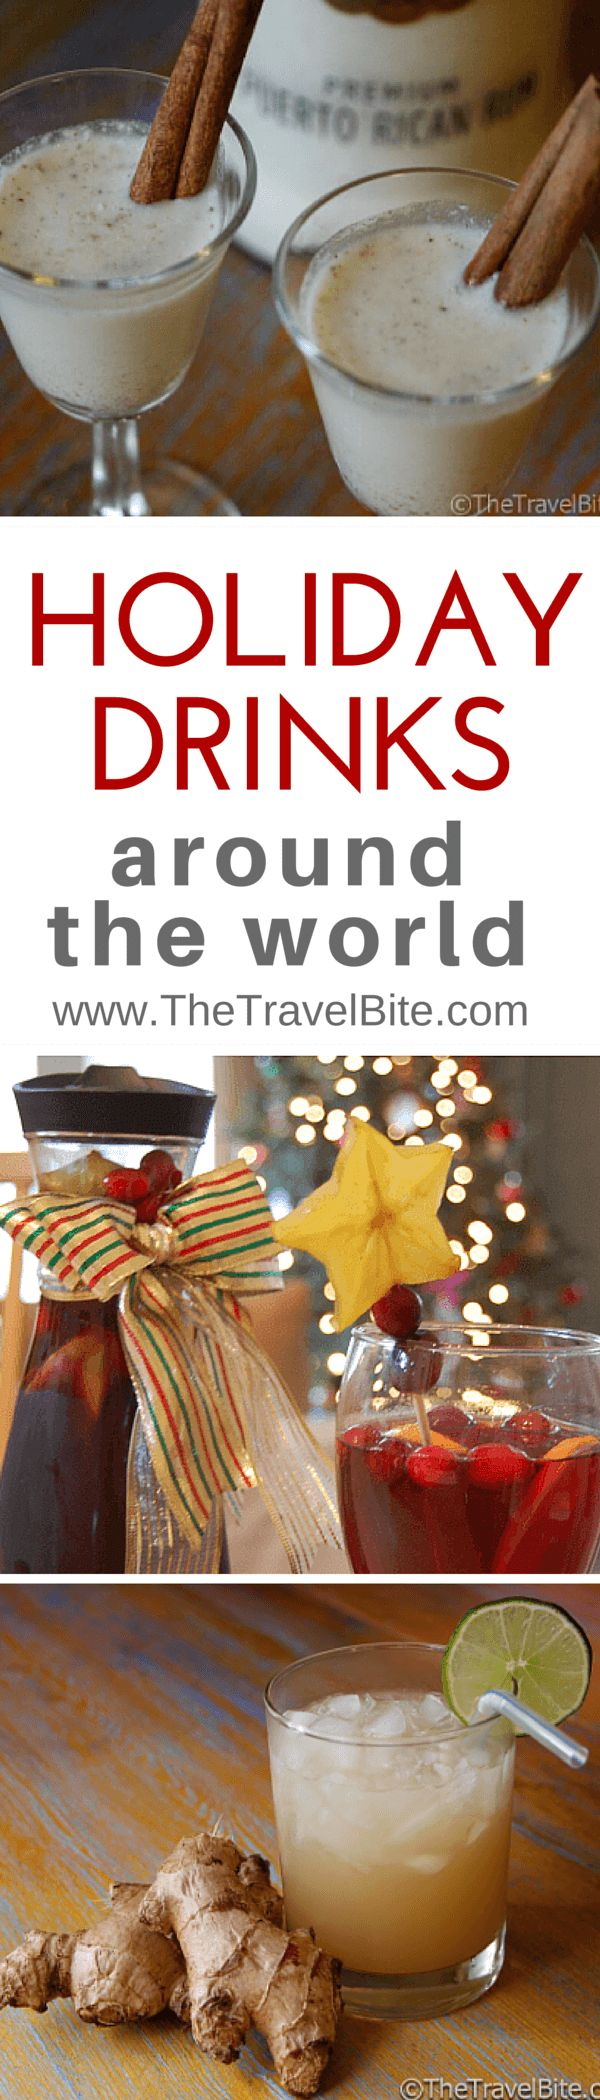 5 Holiday Drinks From Around The World That Make Excellent Gifts ~ http://thetravelbite.com